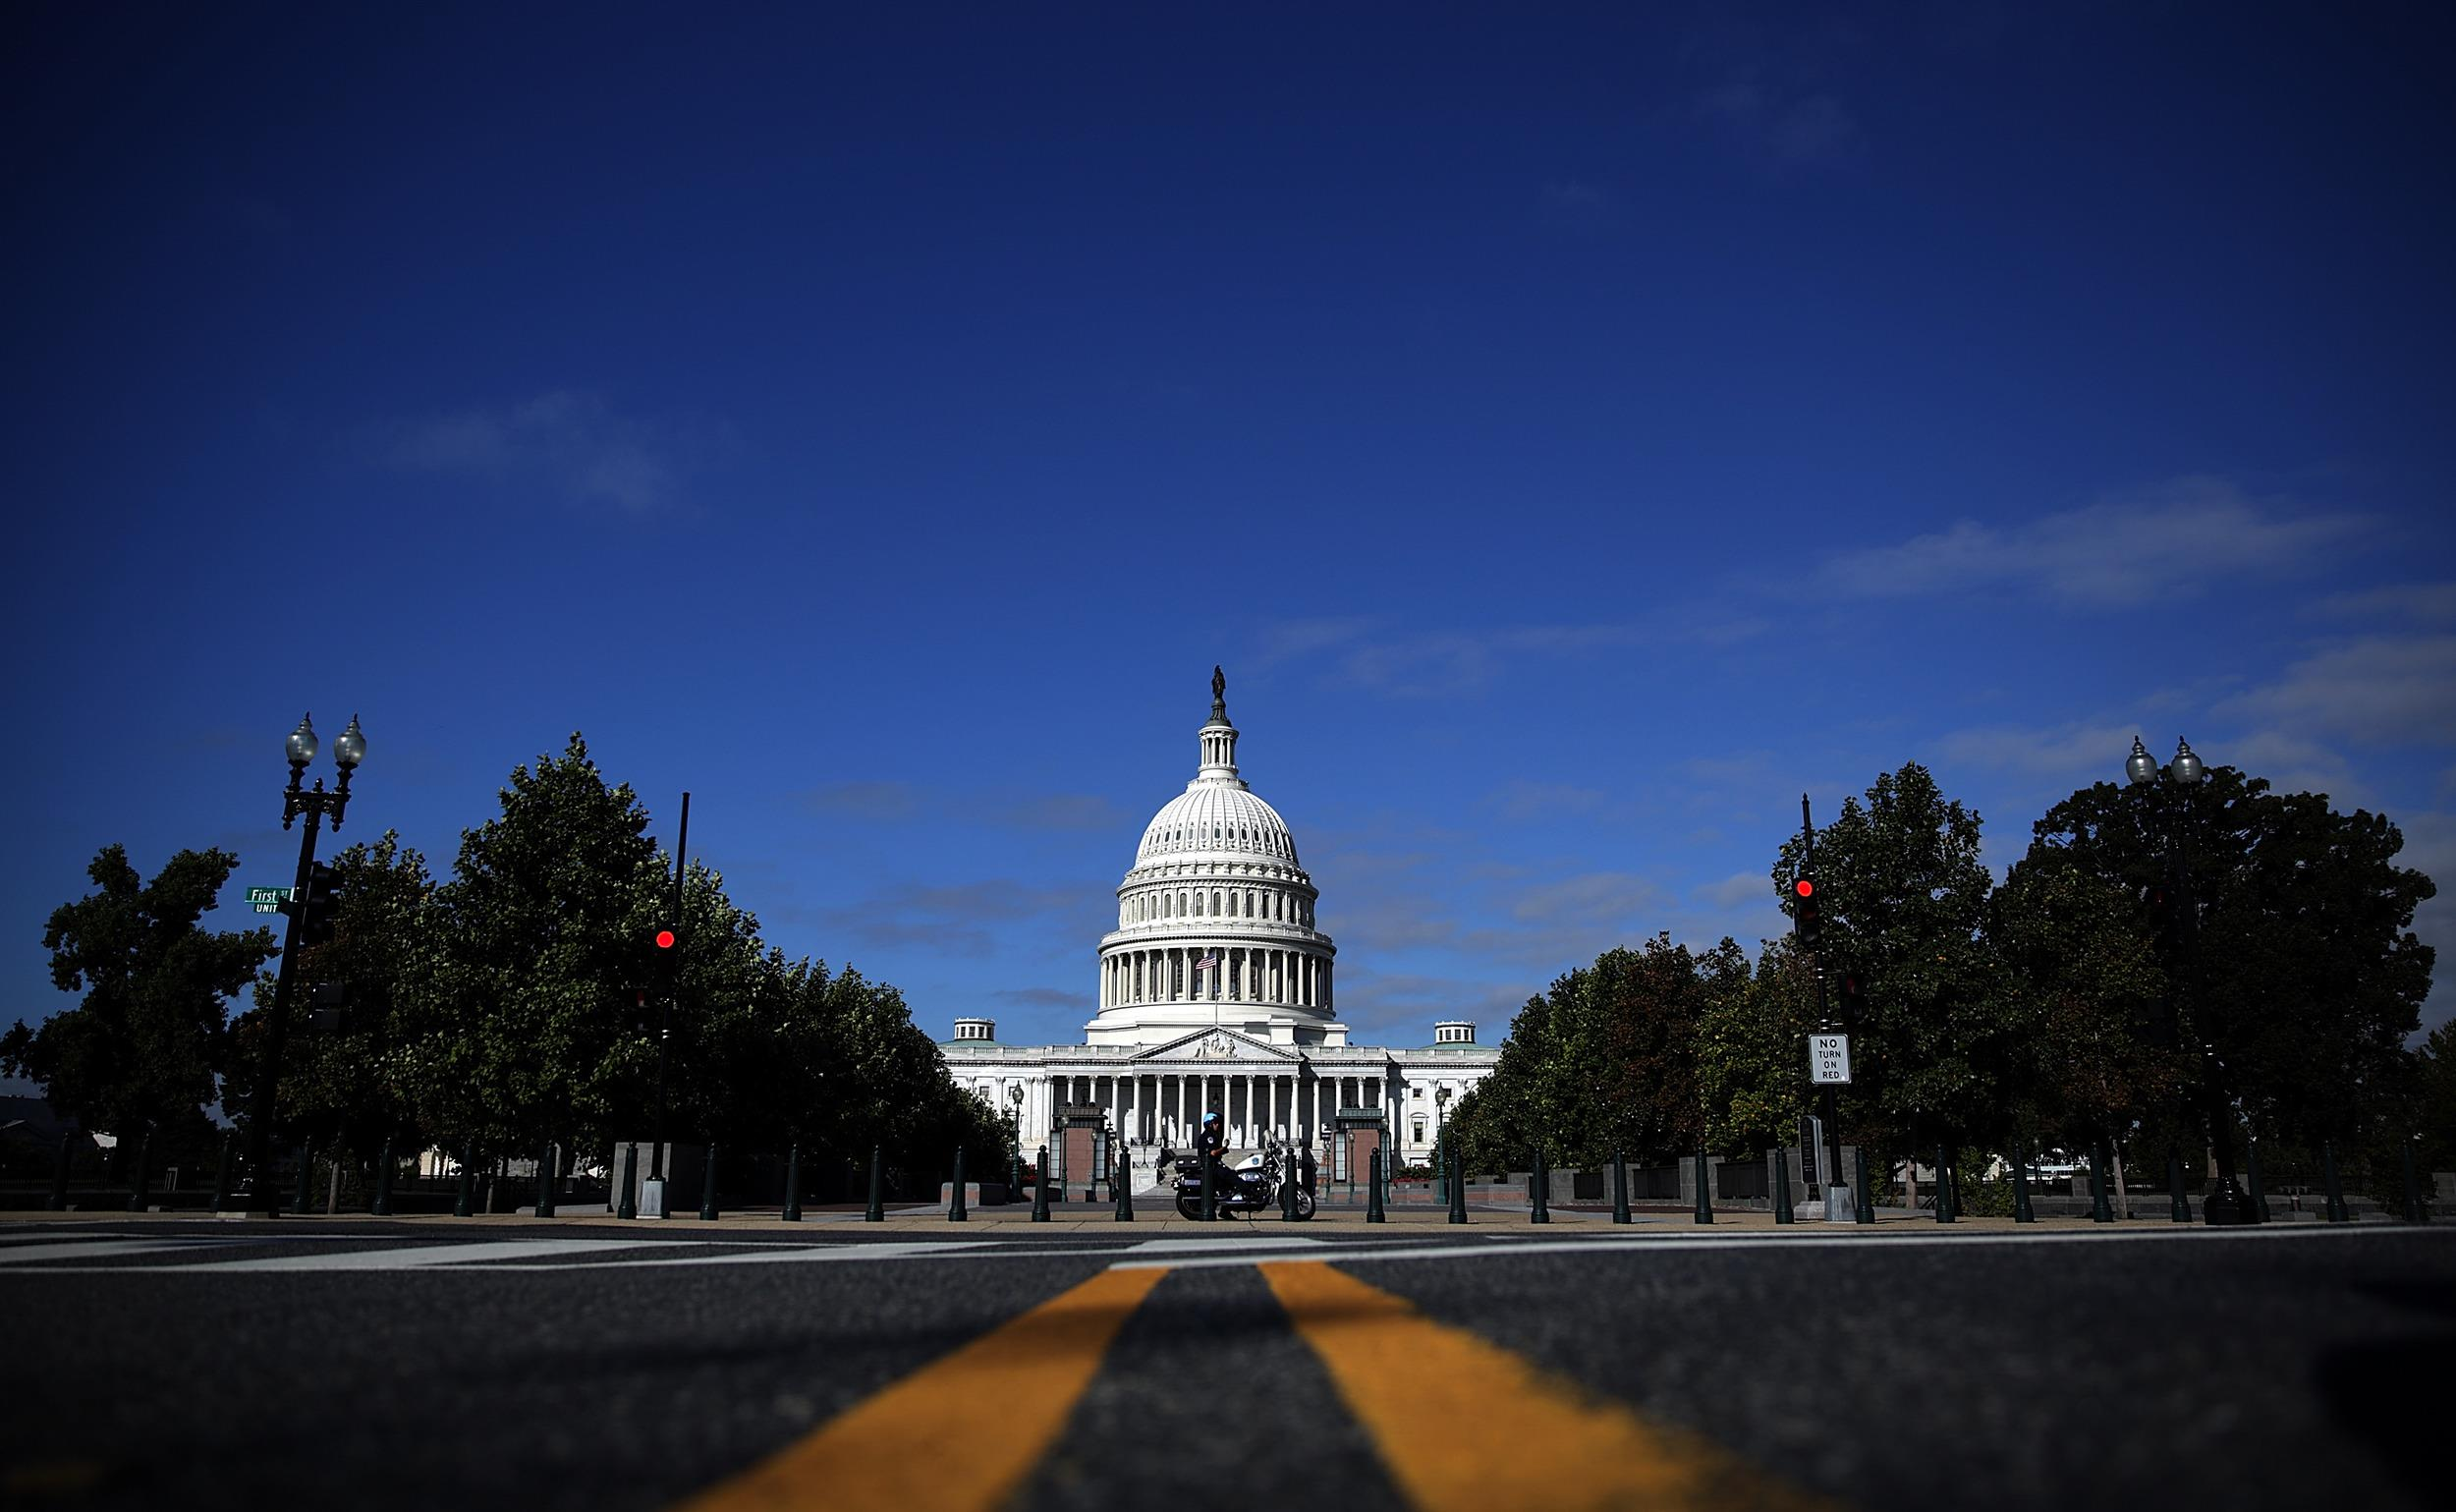 Image: The United States Capitol building